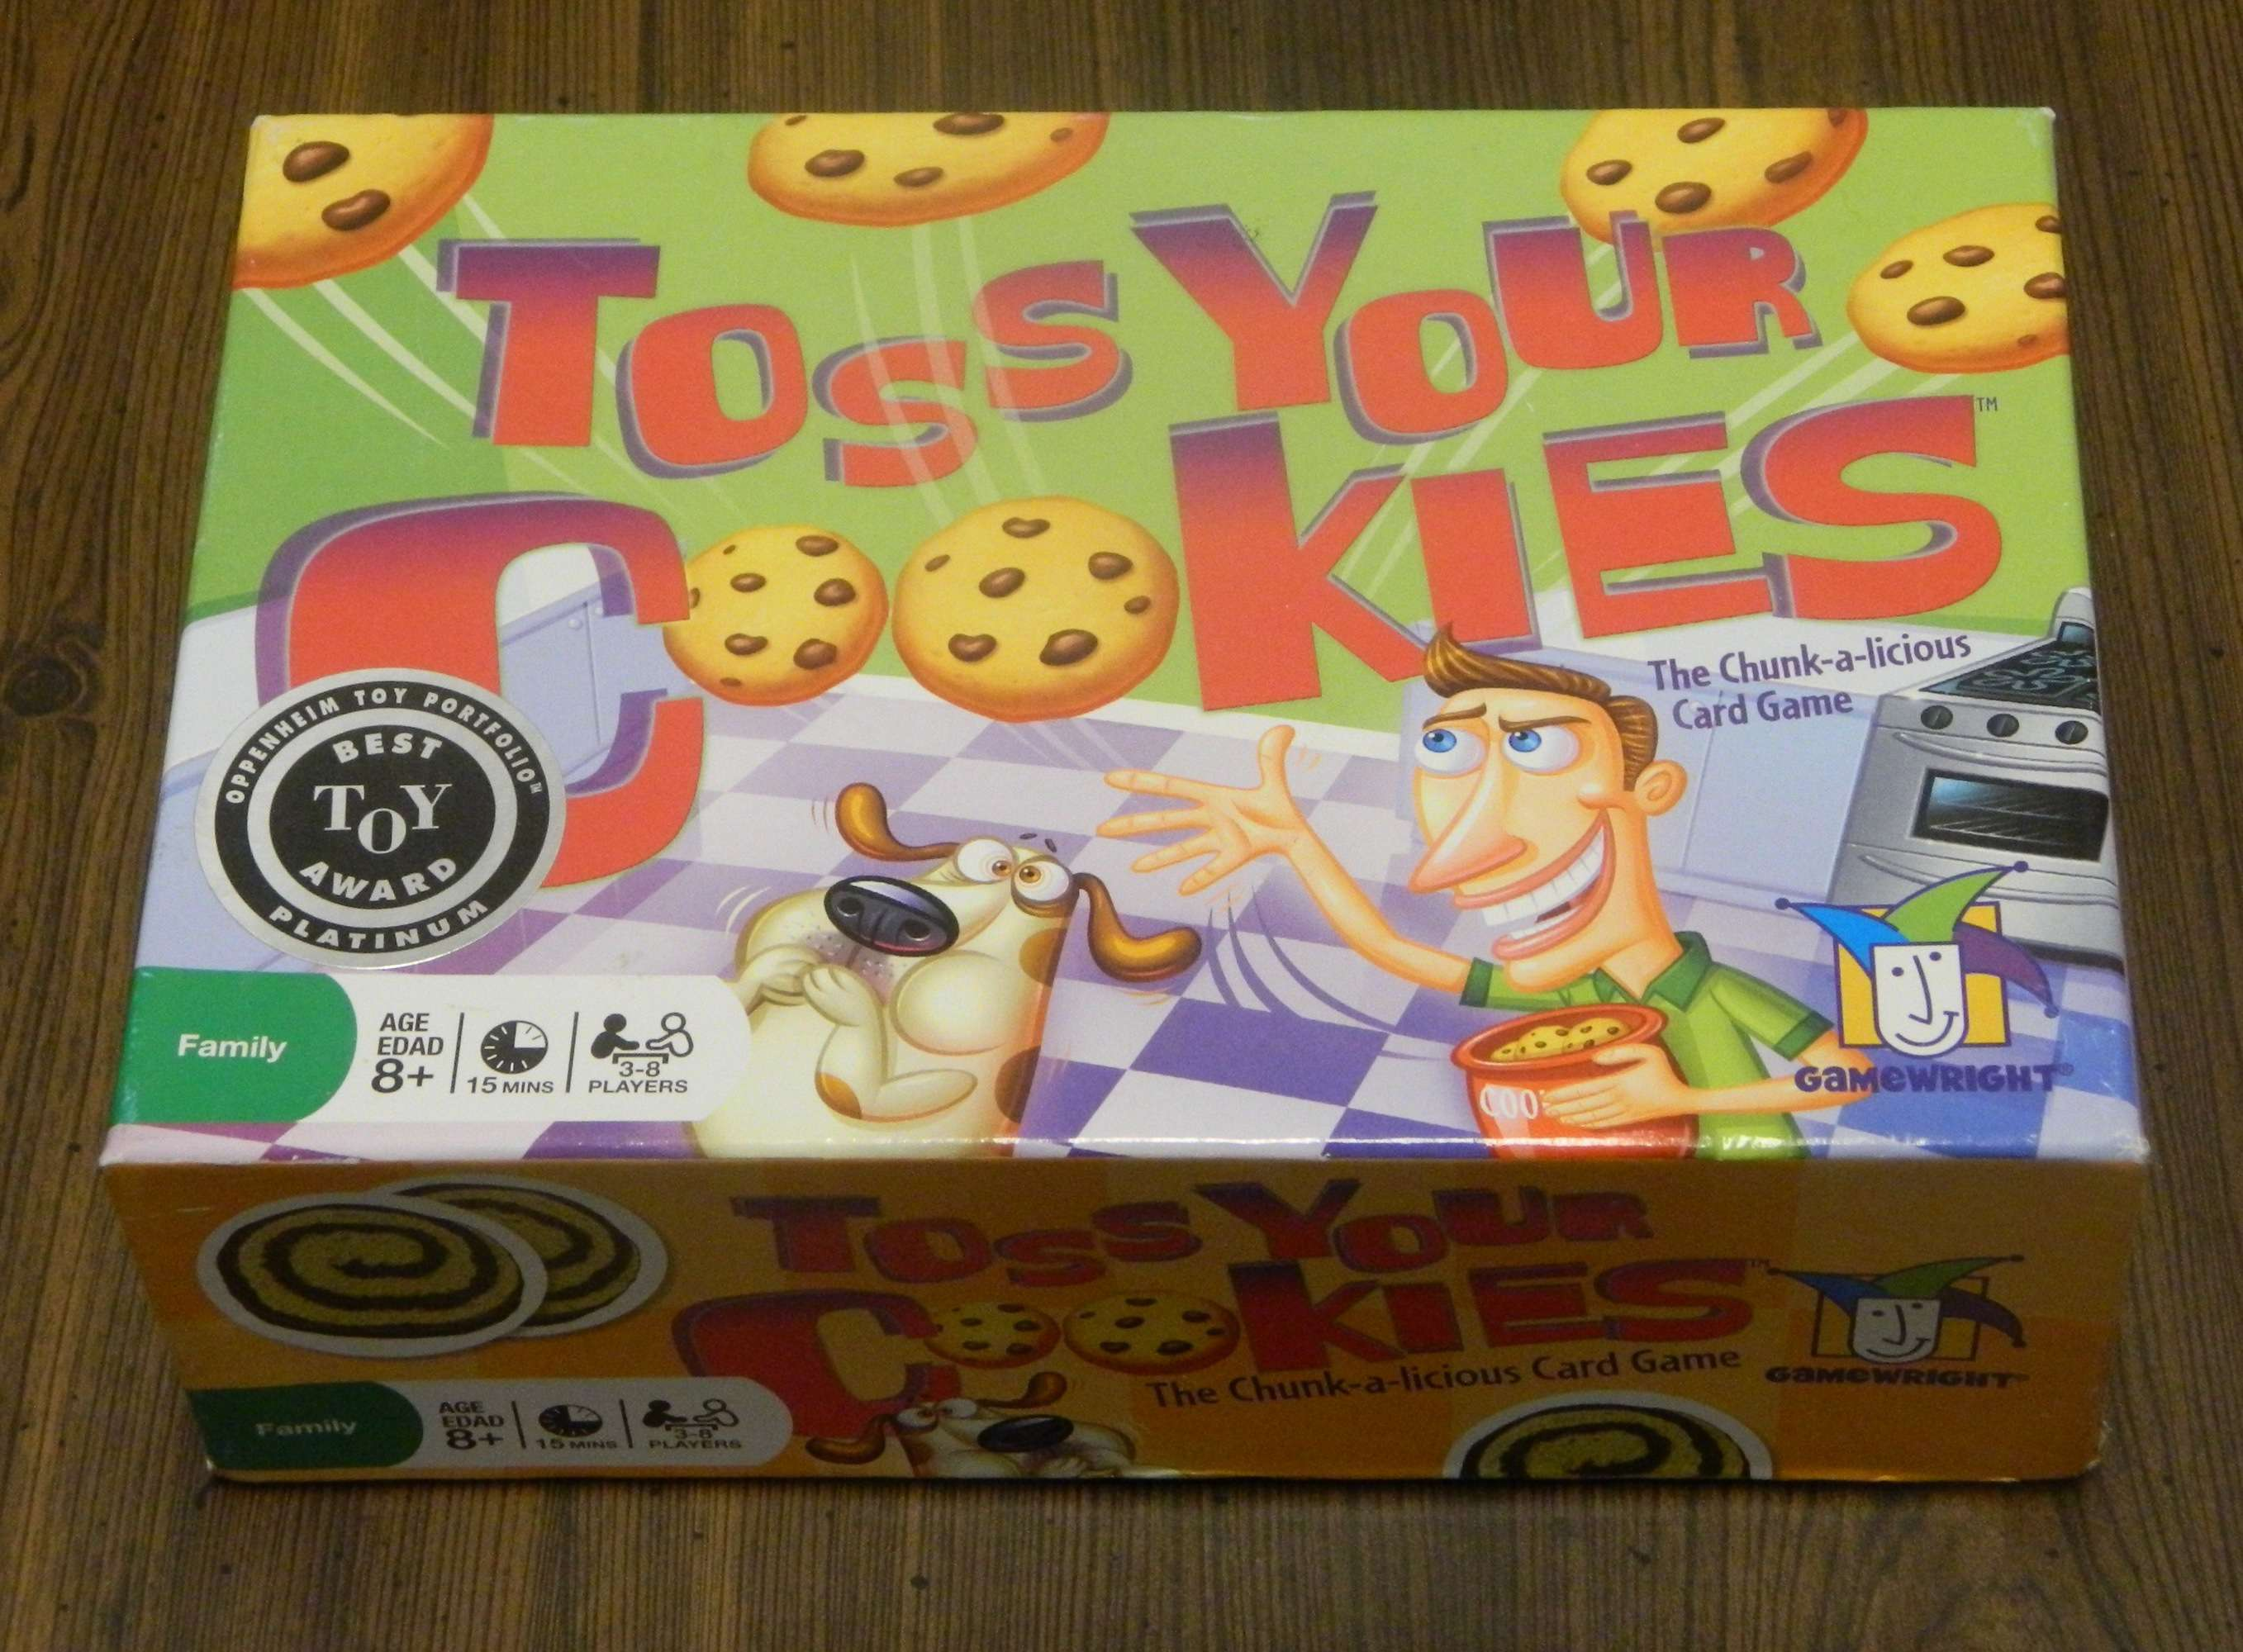 Toss Your Cookies Card Game Box